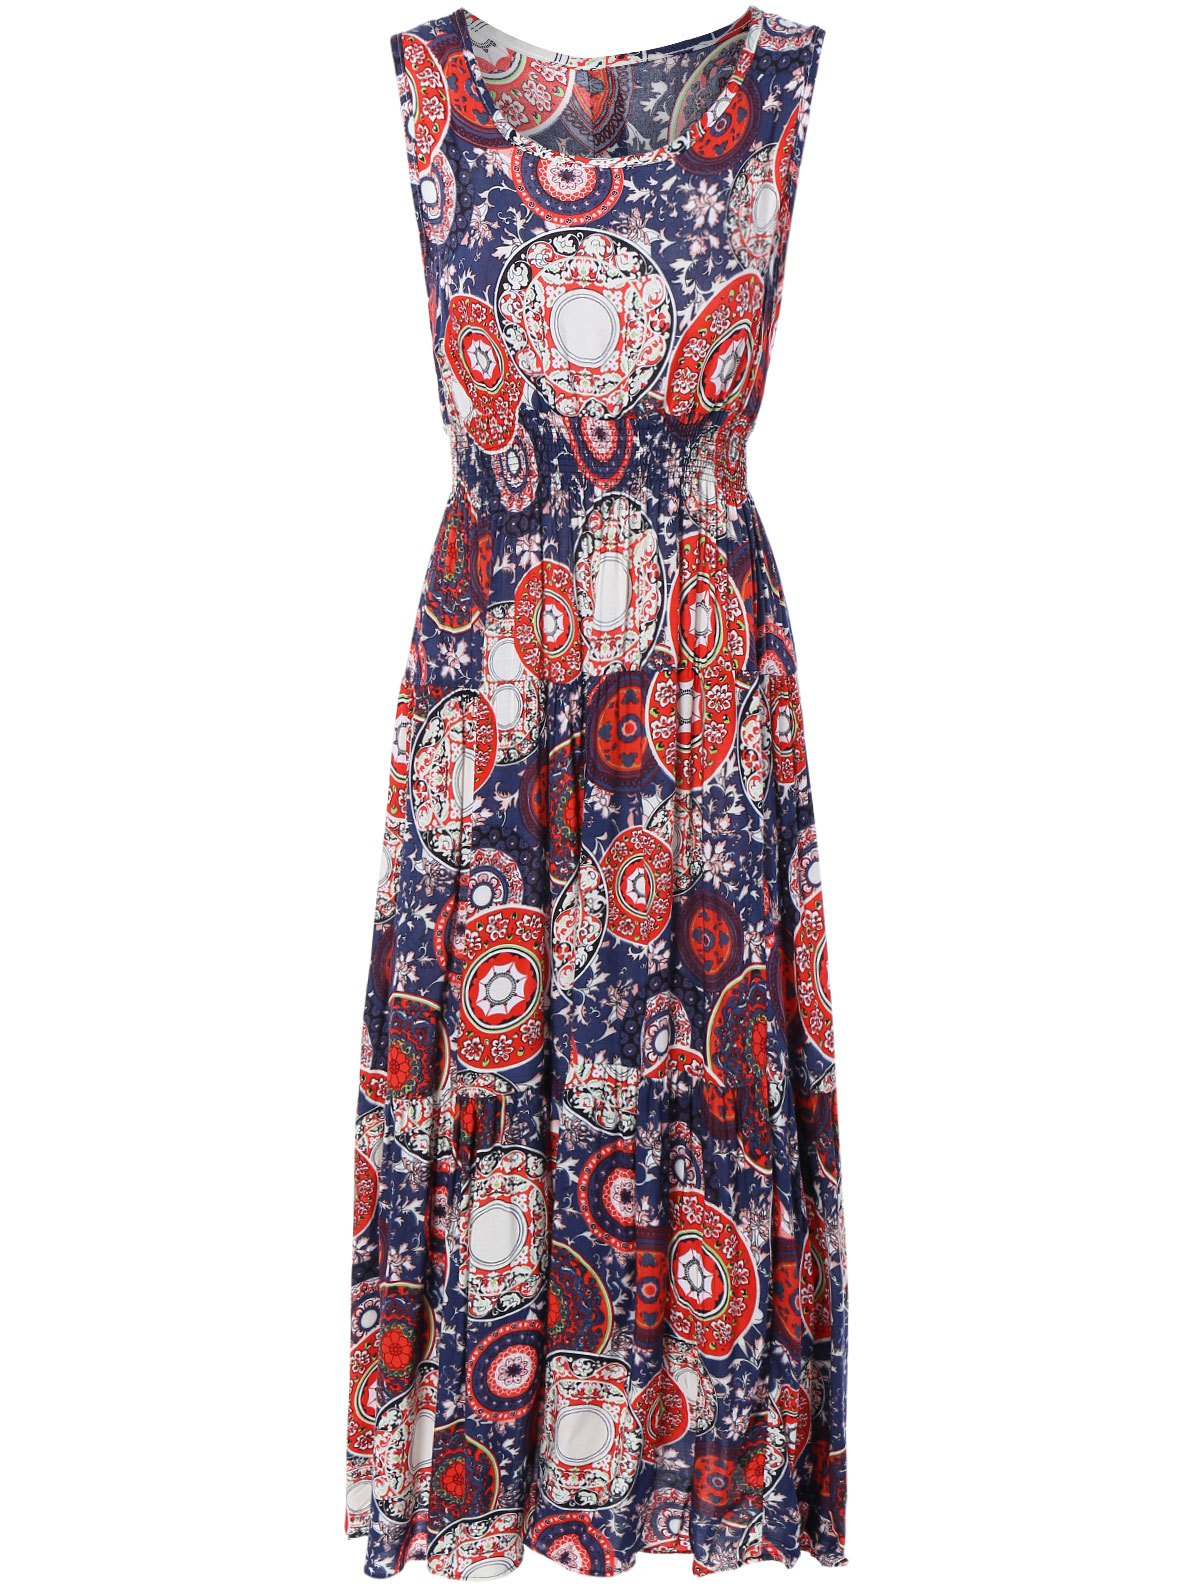 Shop for COLORMIX M Tribal Pattern Cowel Neck Dress online at $ and discover fashion at makeshop-mdrcky9h.ga Cheapest and Latest women & men fashion site including categories such as dresses, shoes, bags and jewelry with free shipping all over the world.